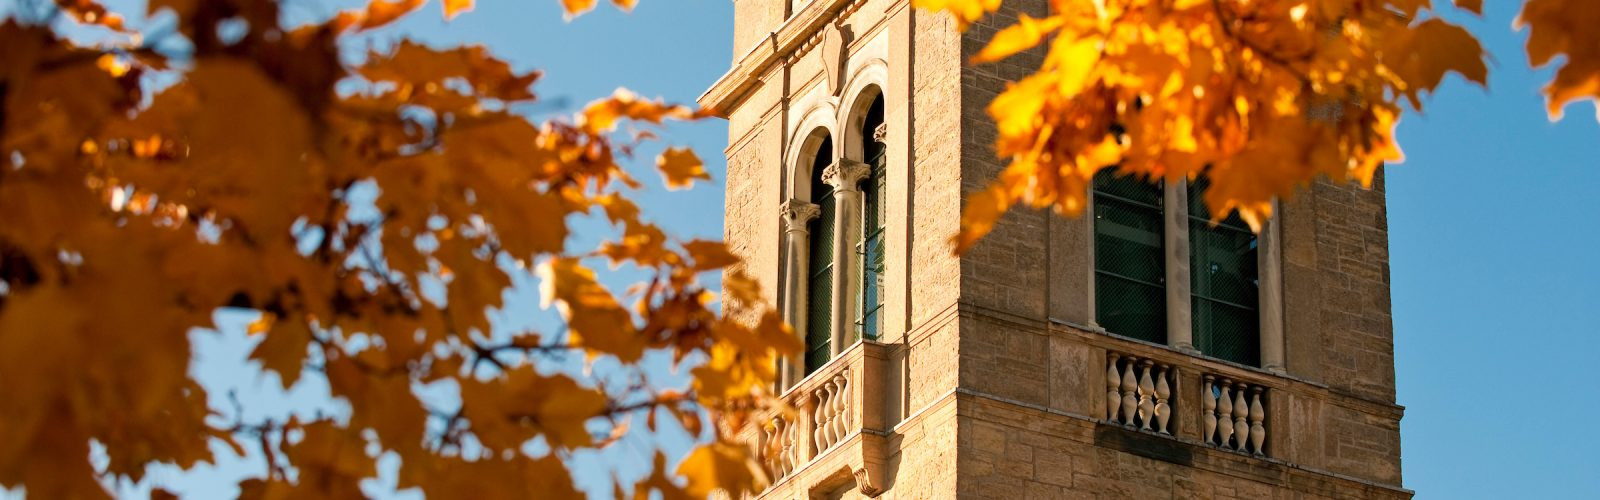 The view of the Carillon Tower framed by the golden autumn leaves.